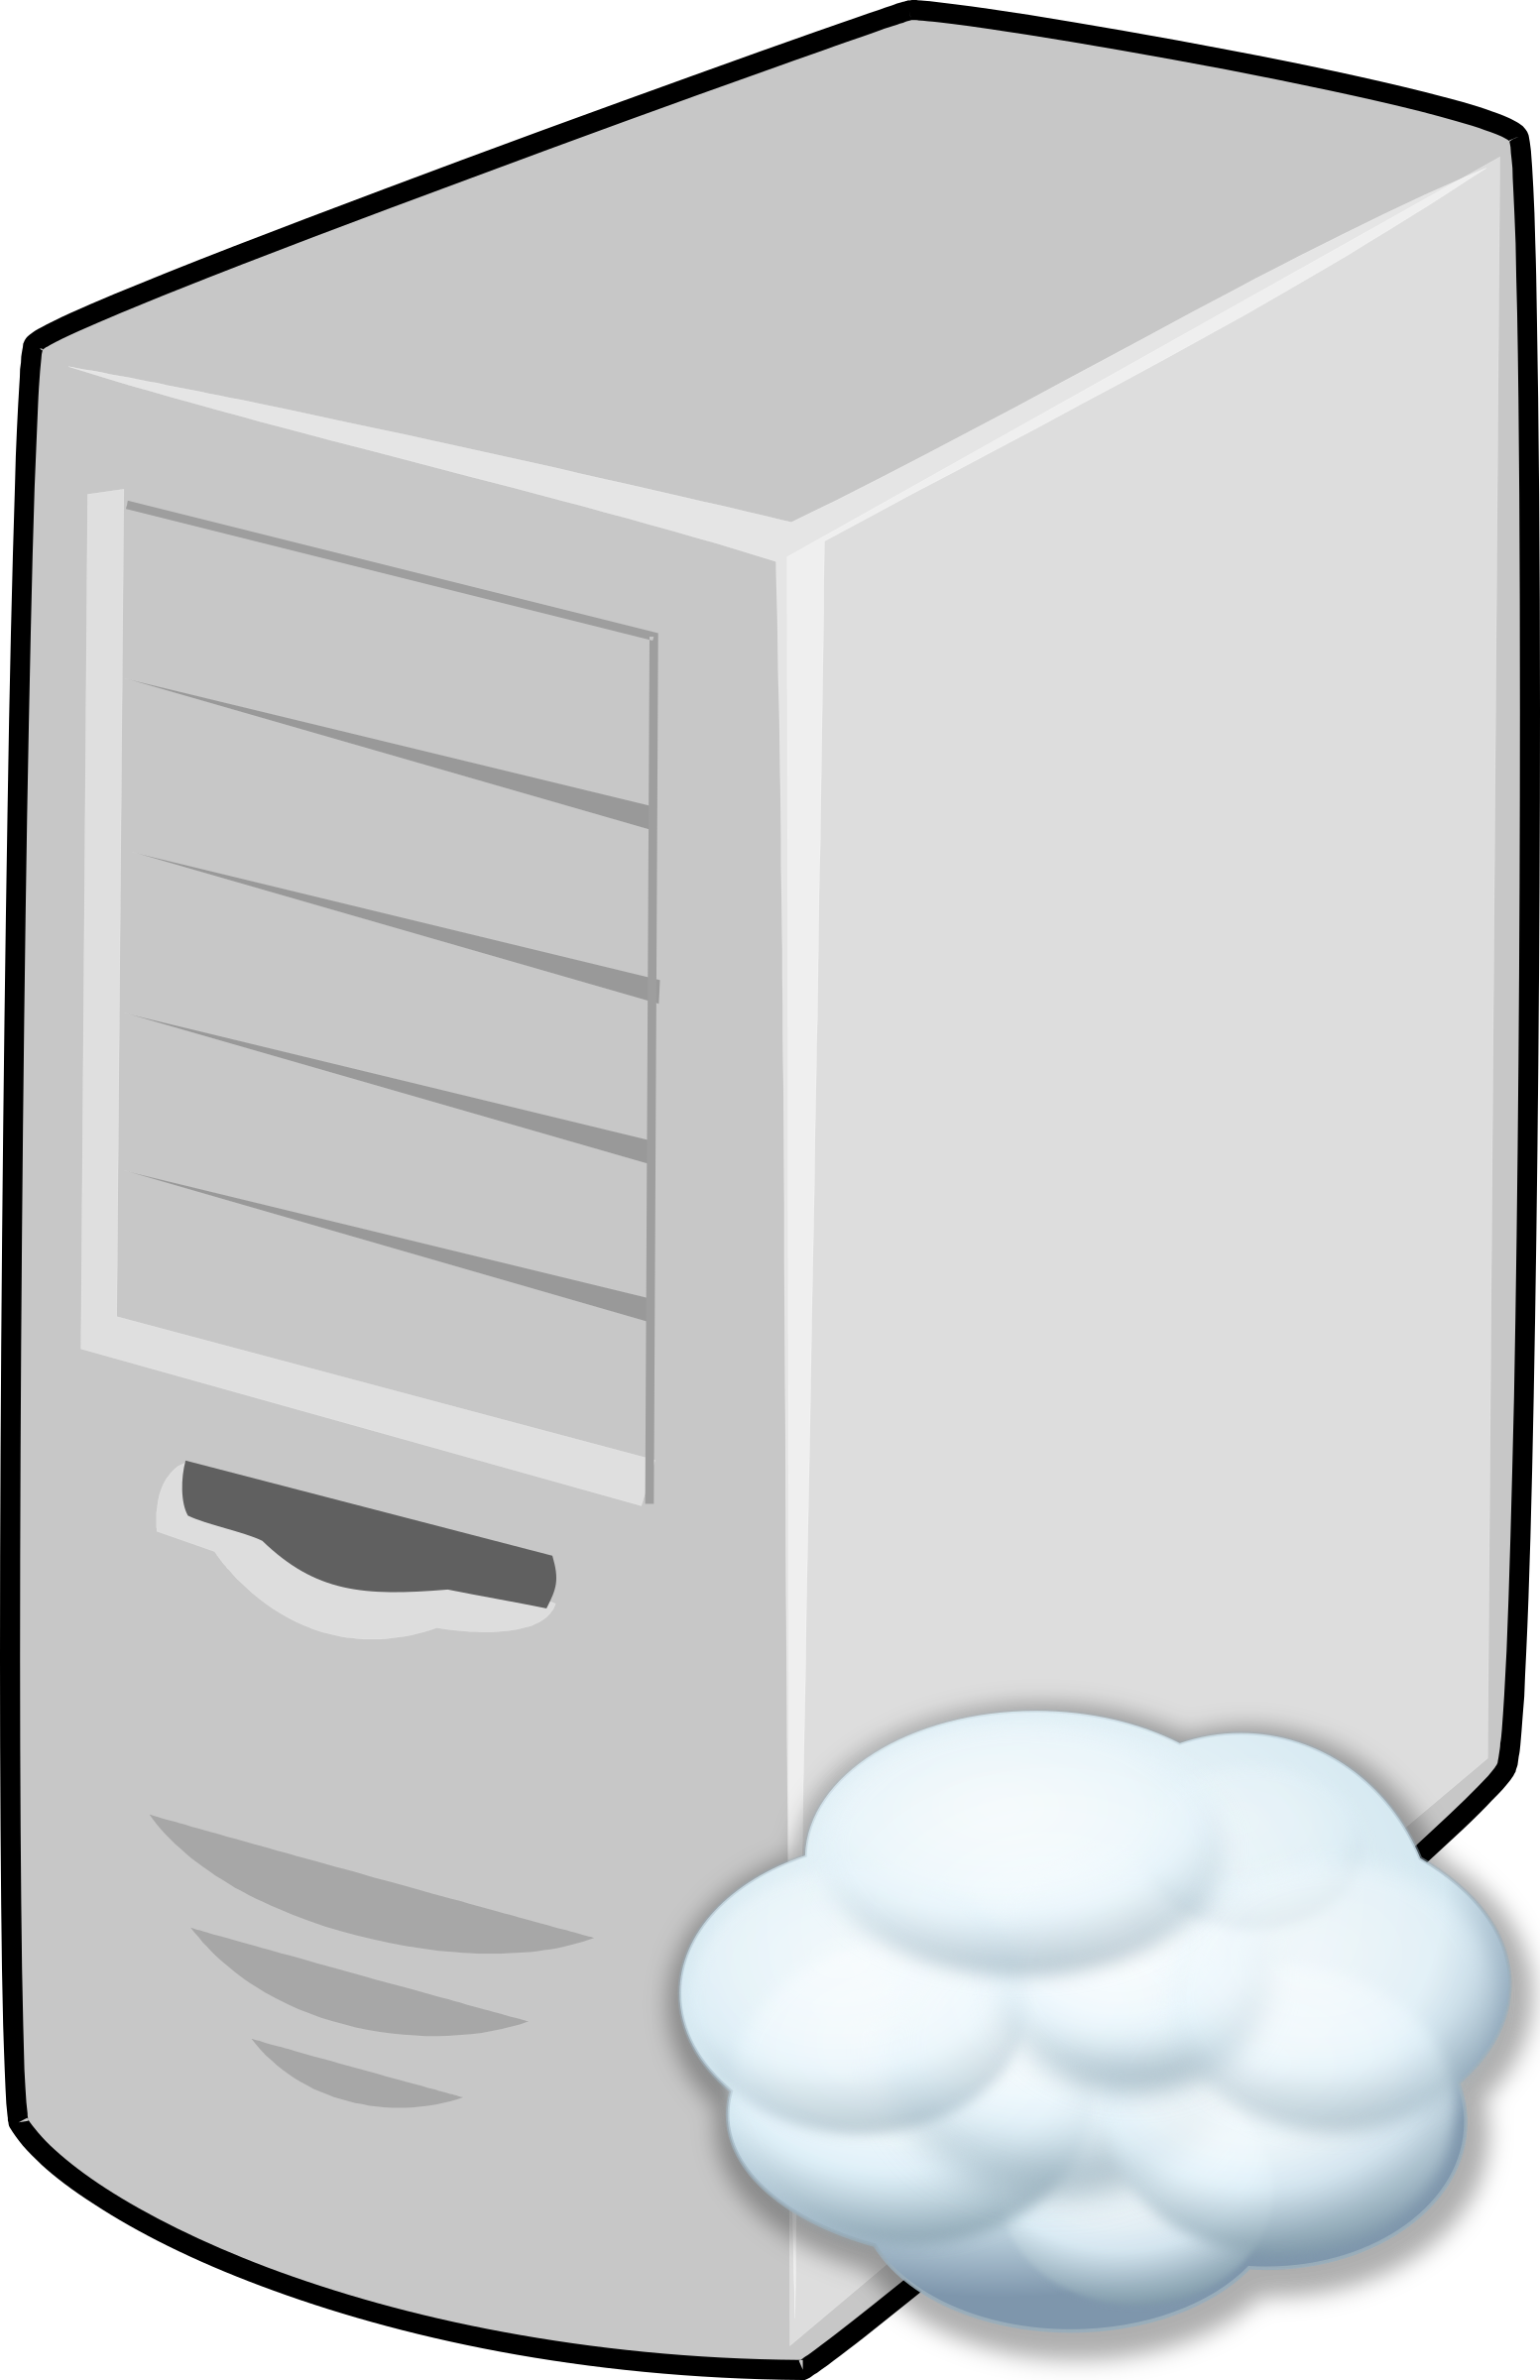 Clipart cloud big image. Server icons png svg free library